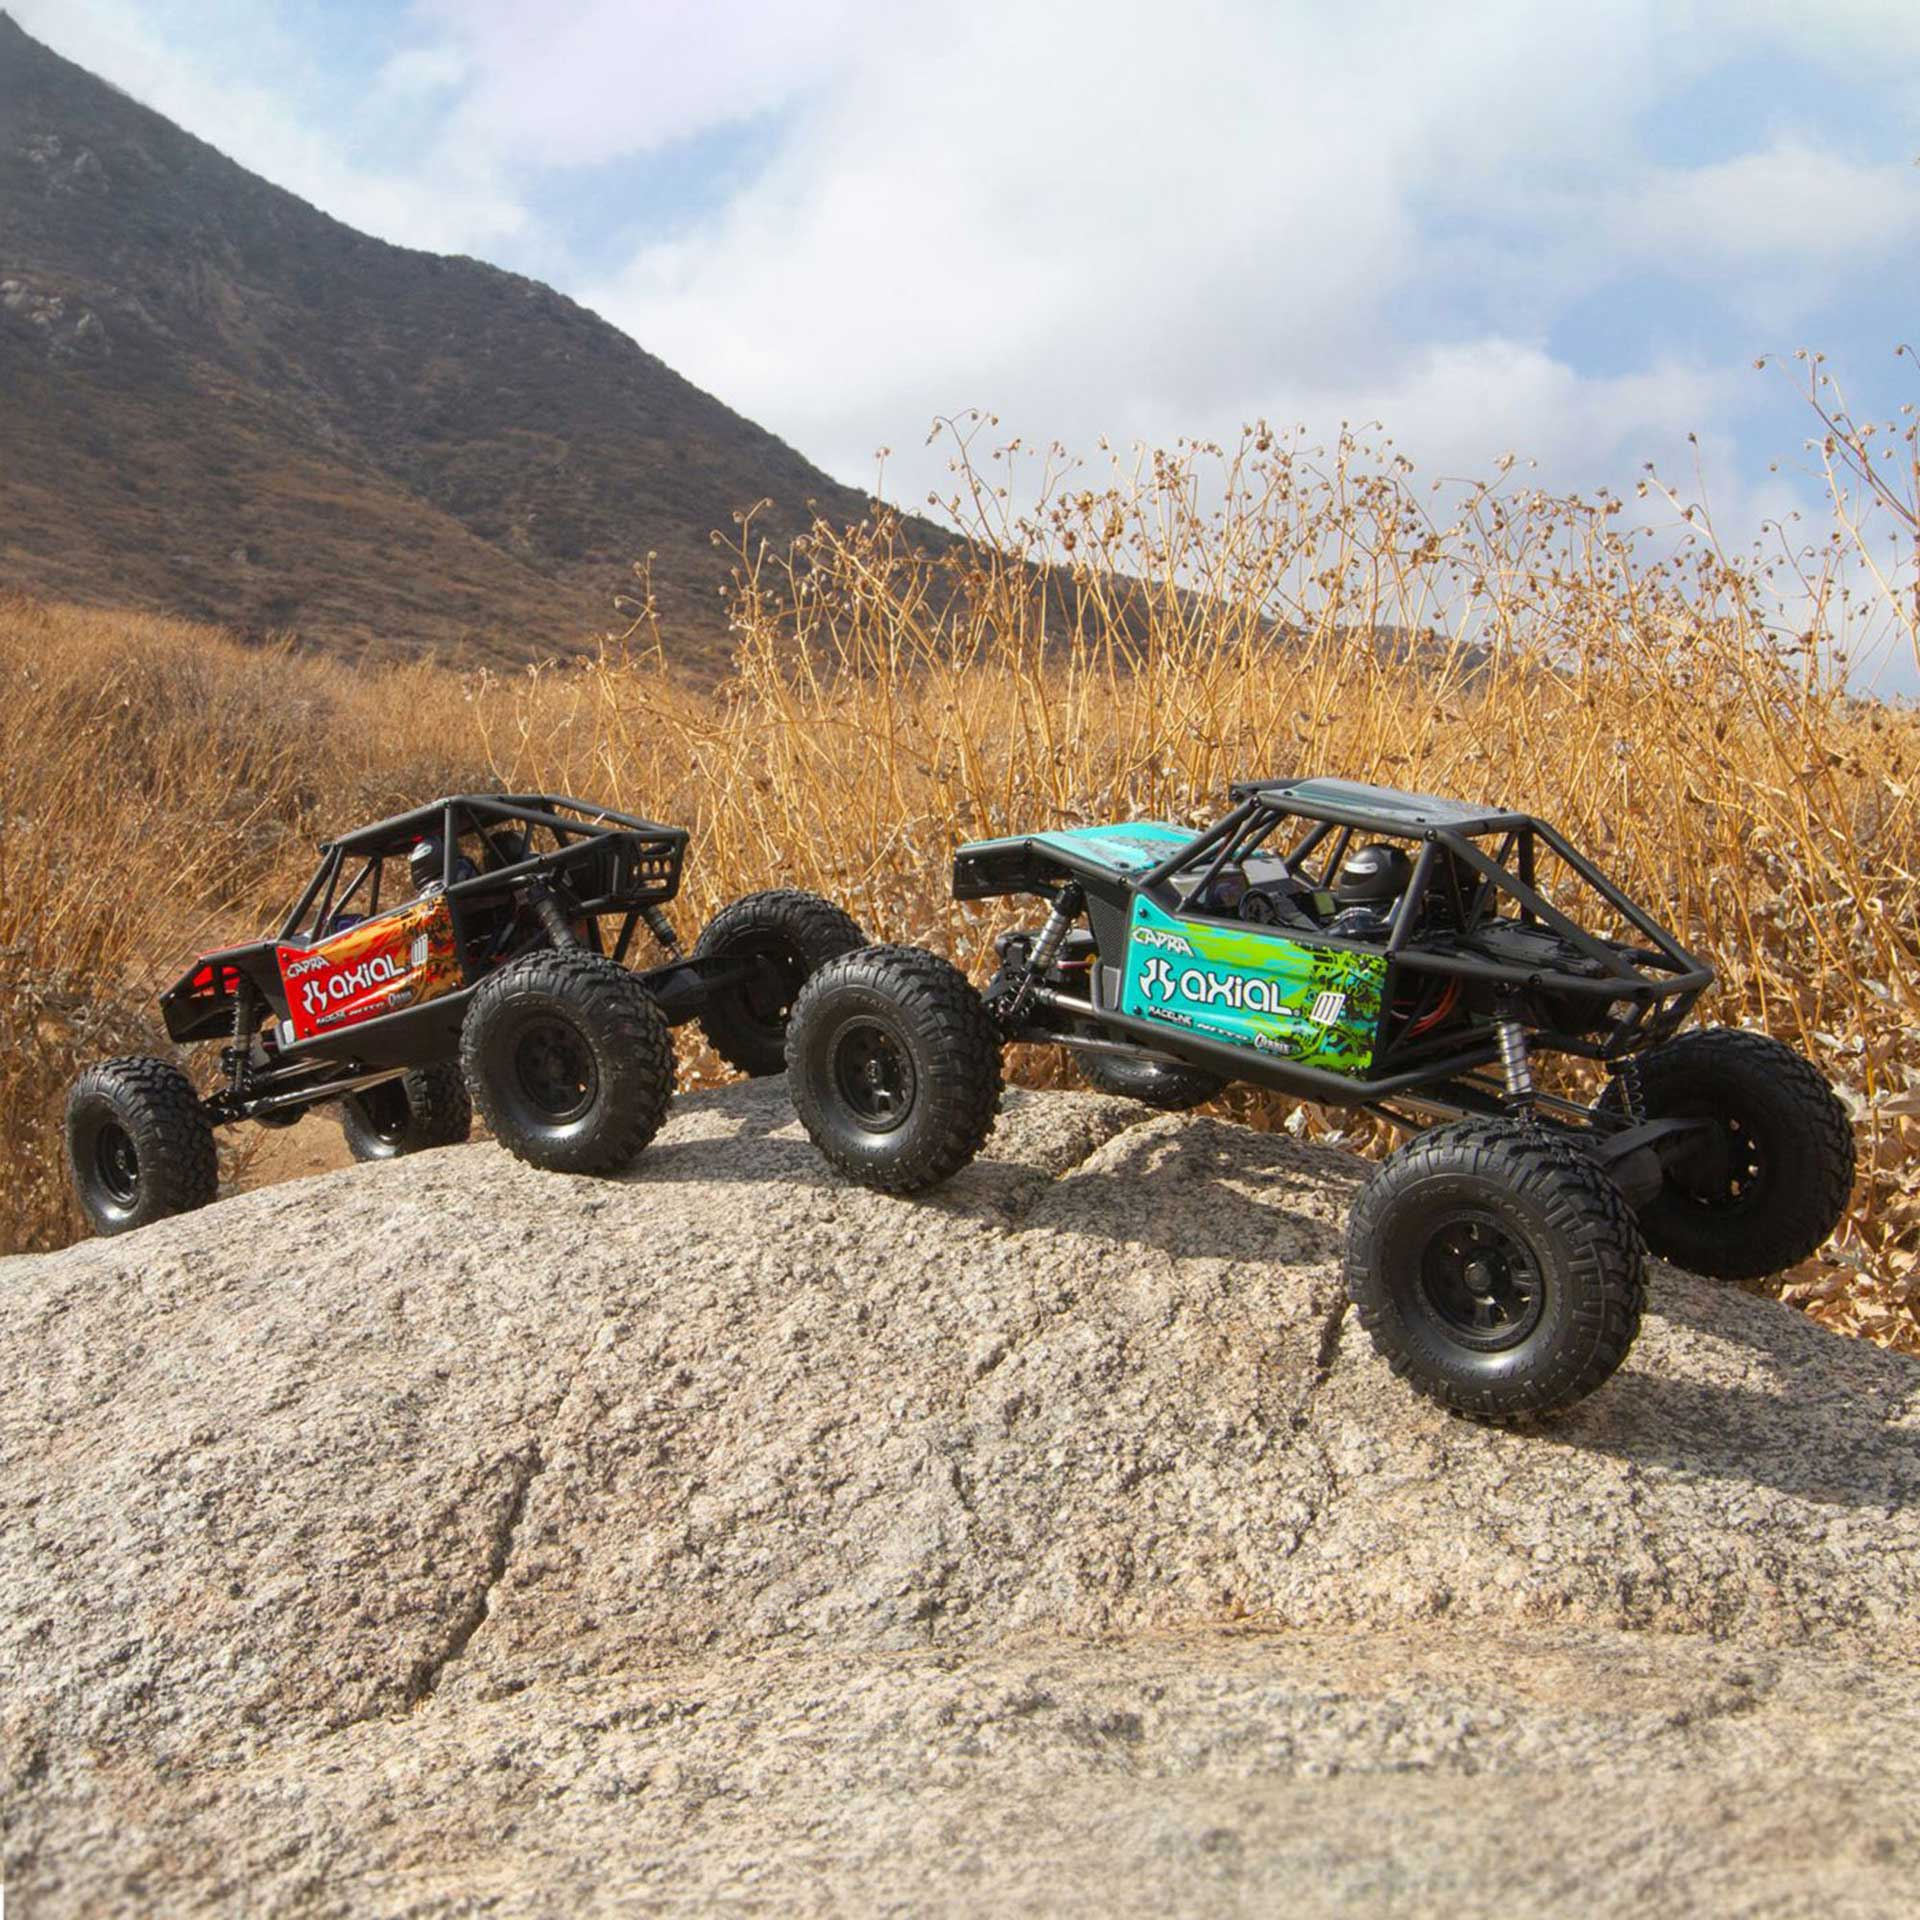 AXIAL CAPRA 1.9 UNLIMITED 4WD RTR TRAIL BUGGY RED/ROT 1/10 CRAWLER